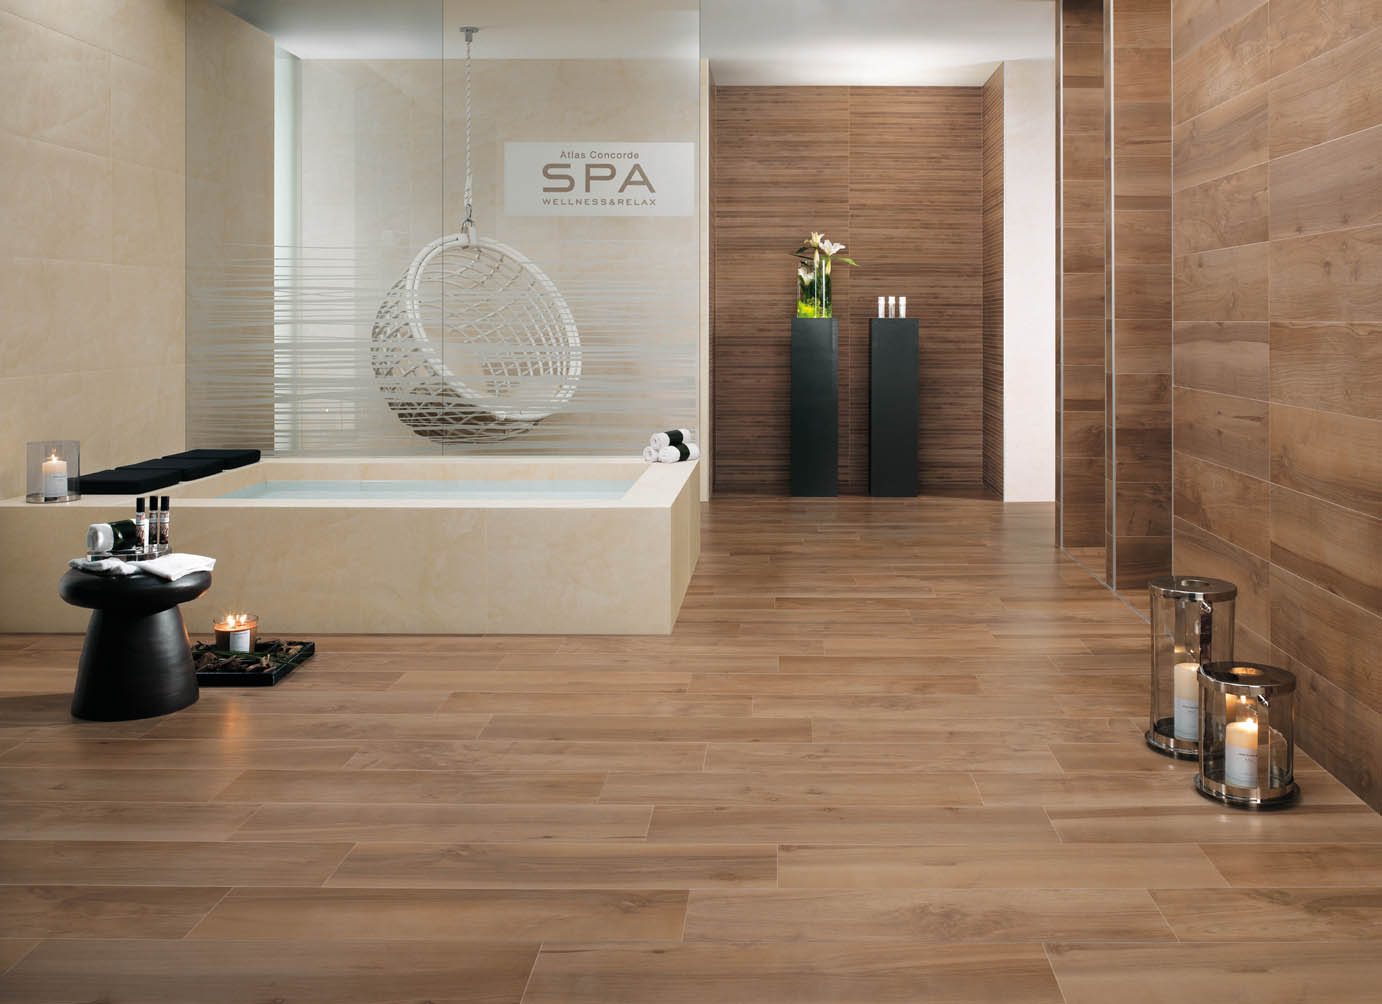 Carrelages int imitations parquets bois duc for Salle de bain carrelage parquet